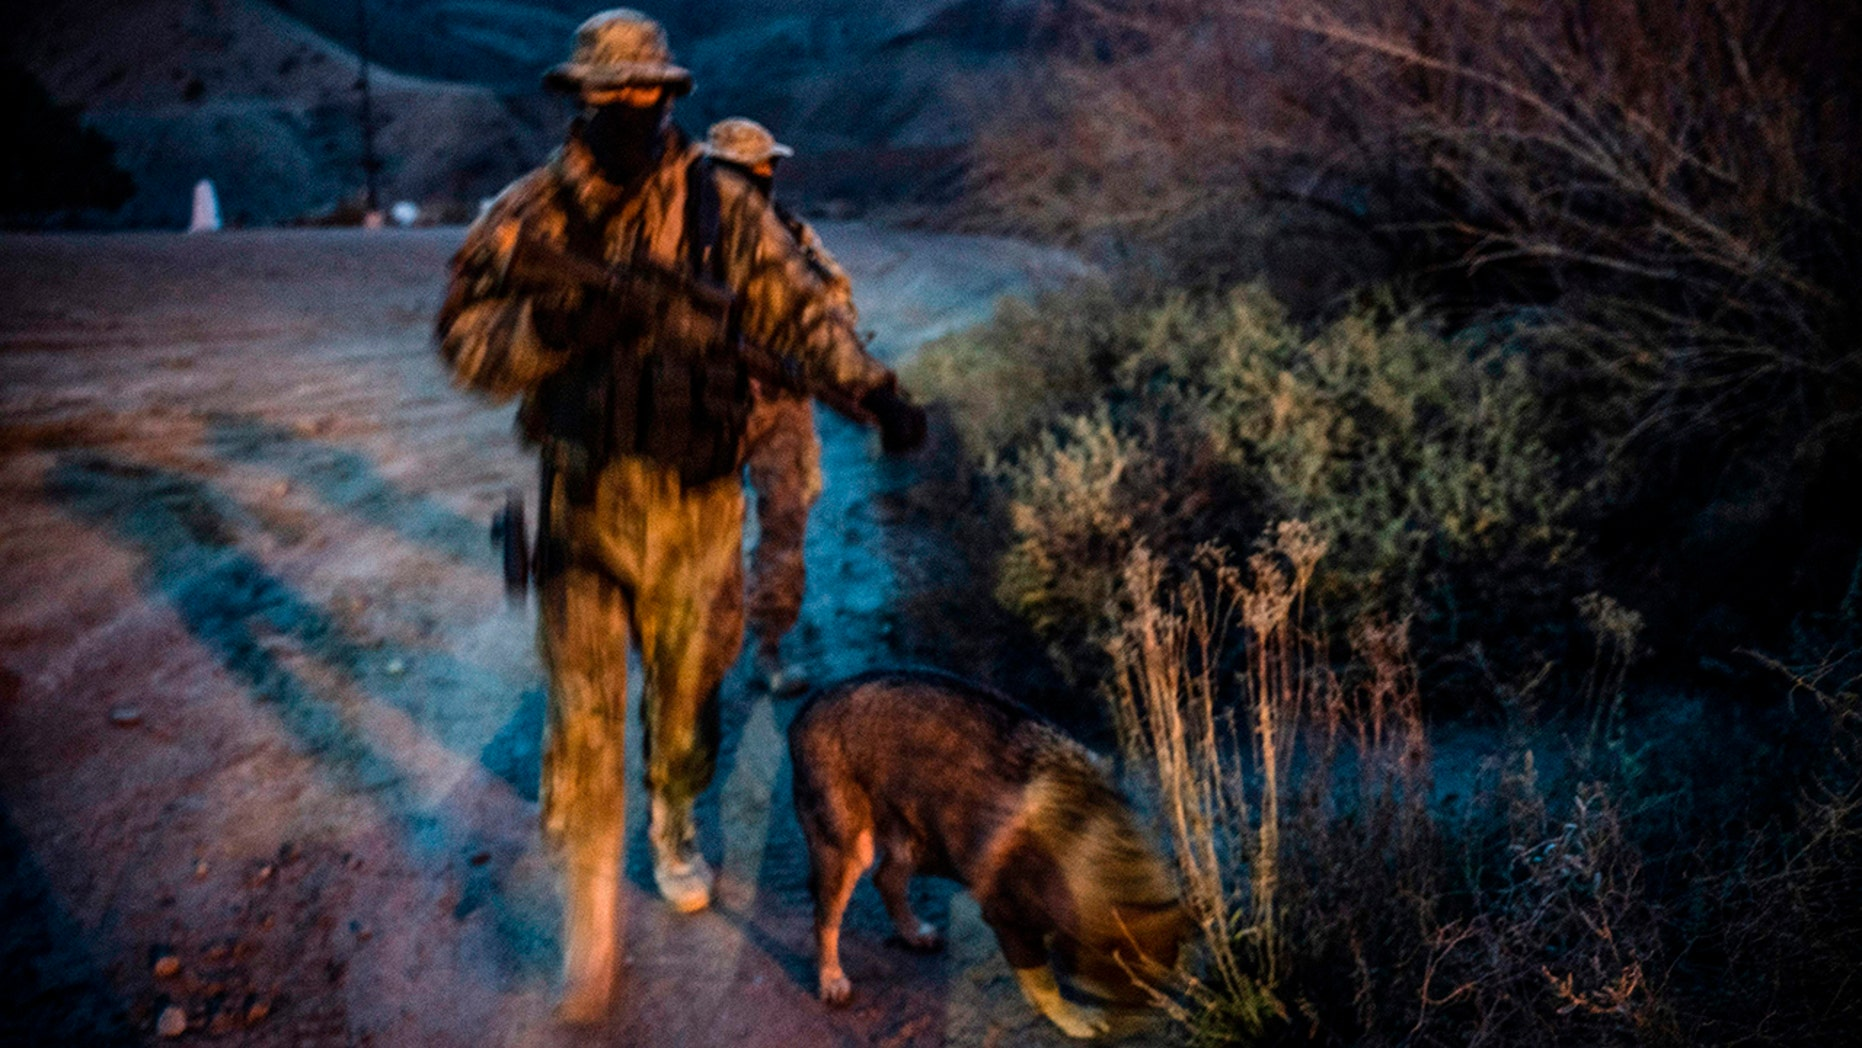 FILE 2019: Members of the Constitutional Patriots New Mexico Border Ops Team militia, Viper and Stinger who go by aliases to protect their identity, patrol the US-Mexico border in Sunland Park, New Mexico.